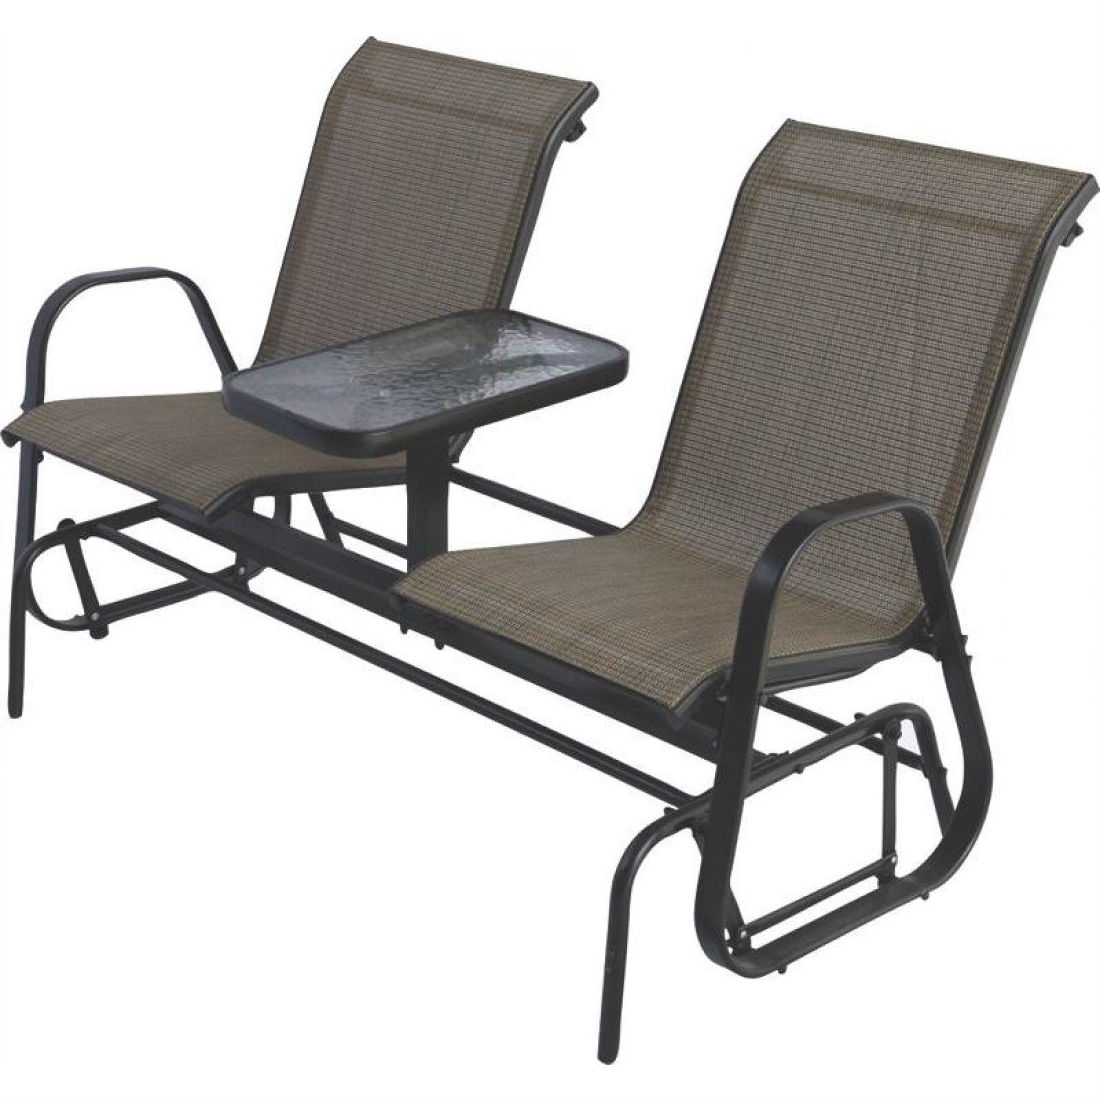 2 Person Outdoor Patio Furniture Glider Chairs With Console Table